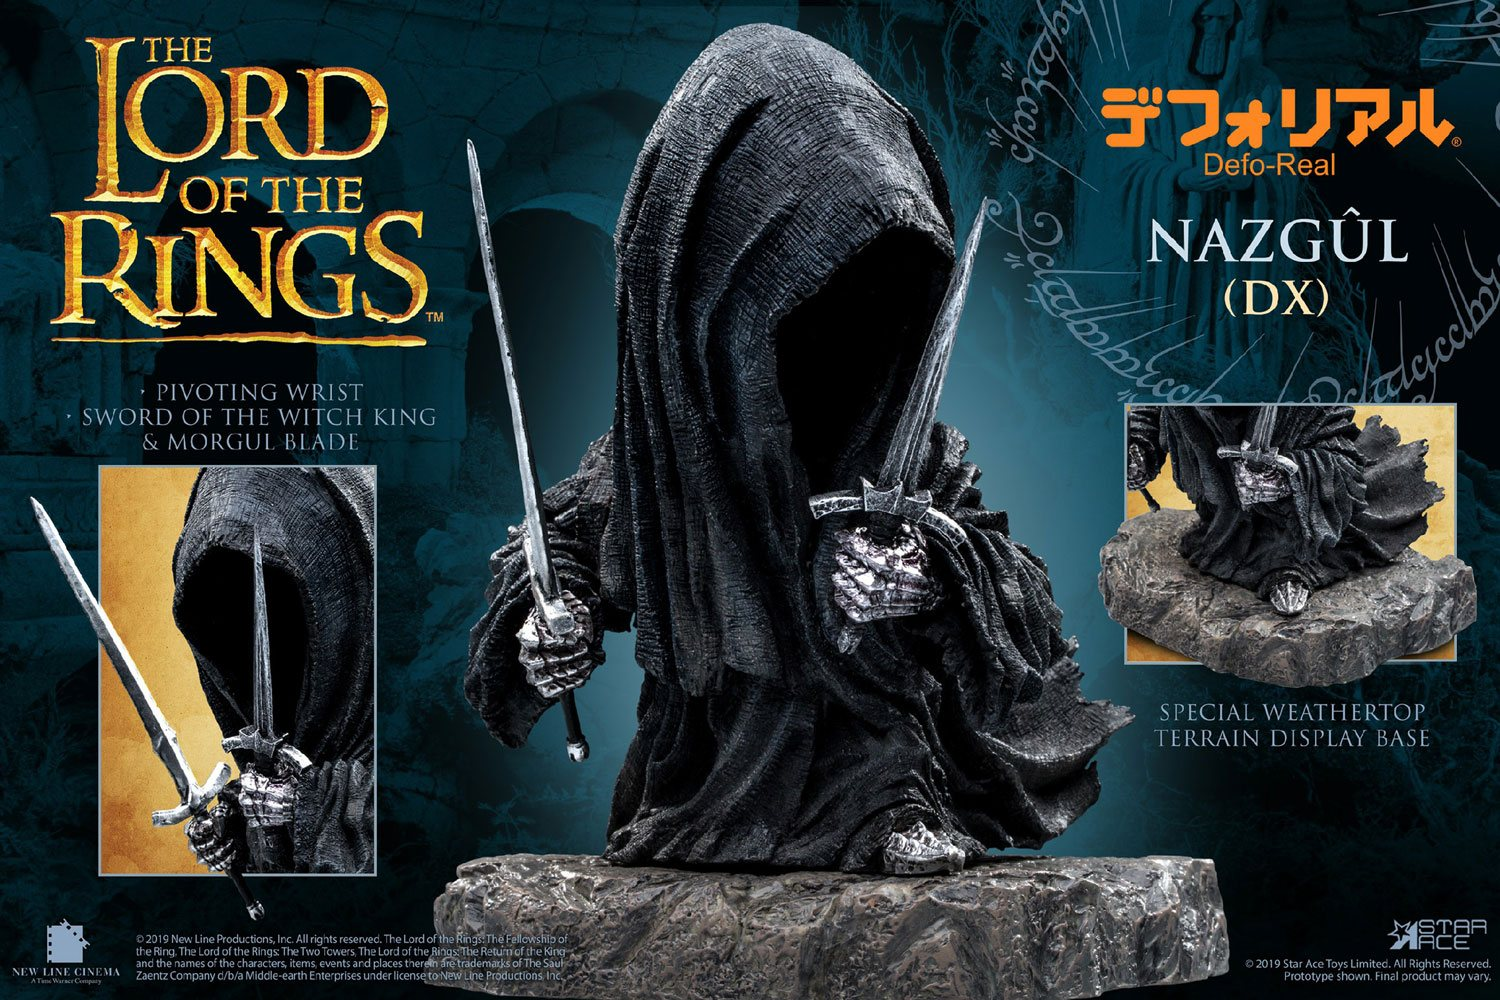 Lord of the Rings Defo-Real Series Soft Vinyl Figure Nazgul Deluxe Version